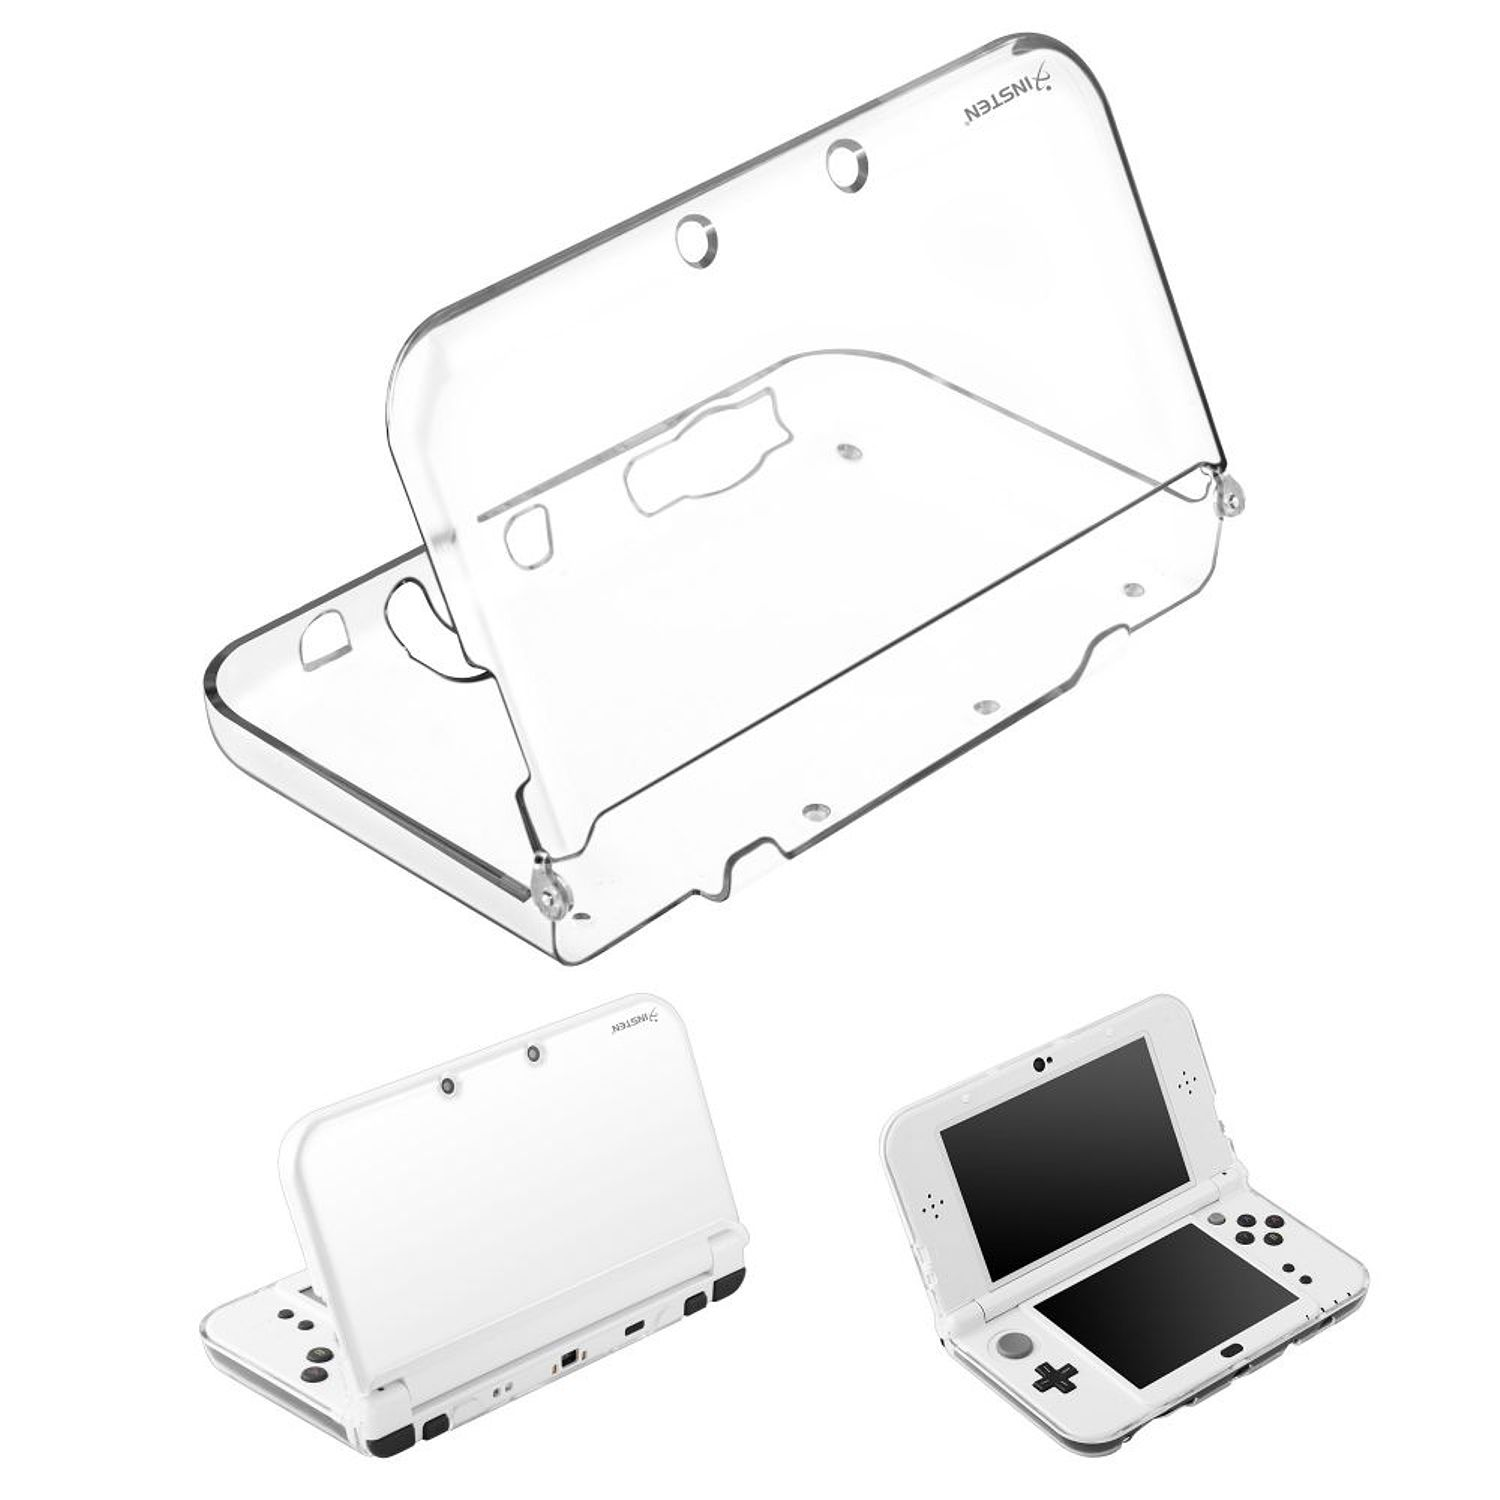 Nintendo New 3DS LL/3DS XL Case, by Insten TPU Rubber Candy Skin Clear Case Cover For Nintendo New 3DS LL/3DS XL